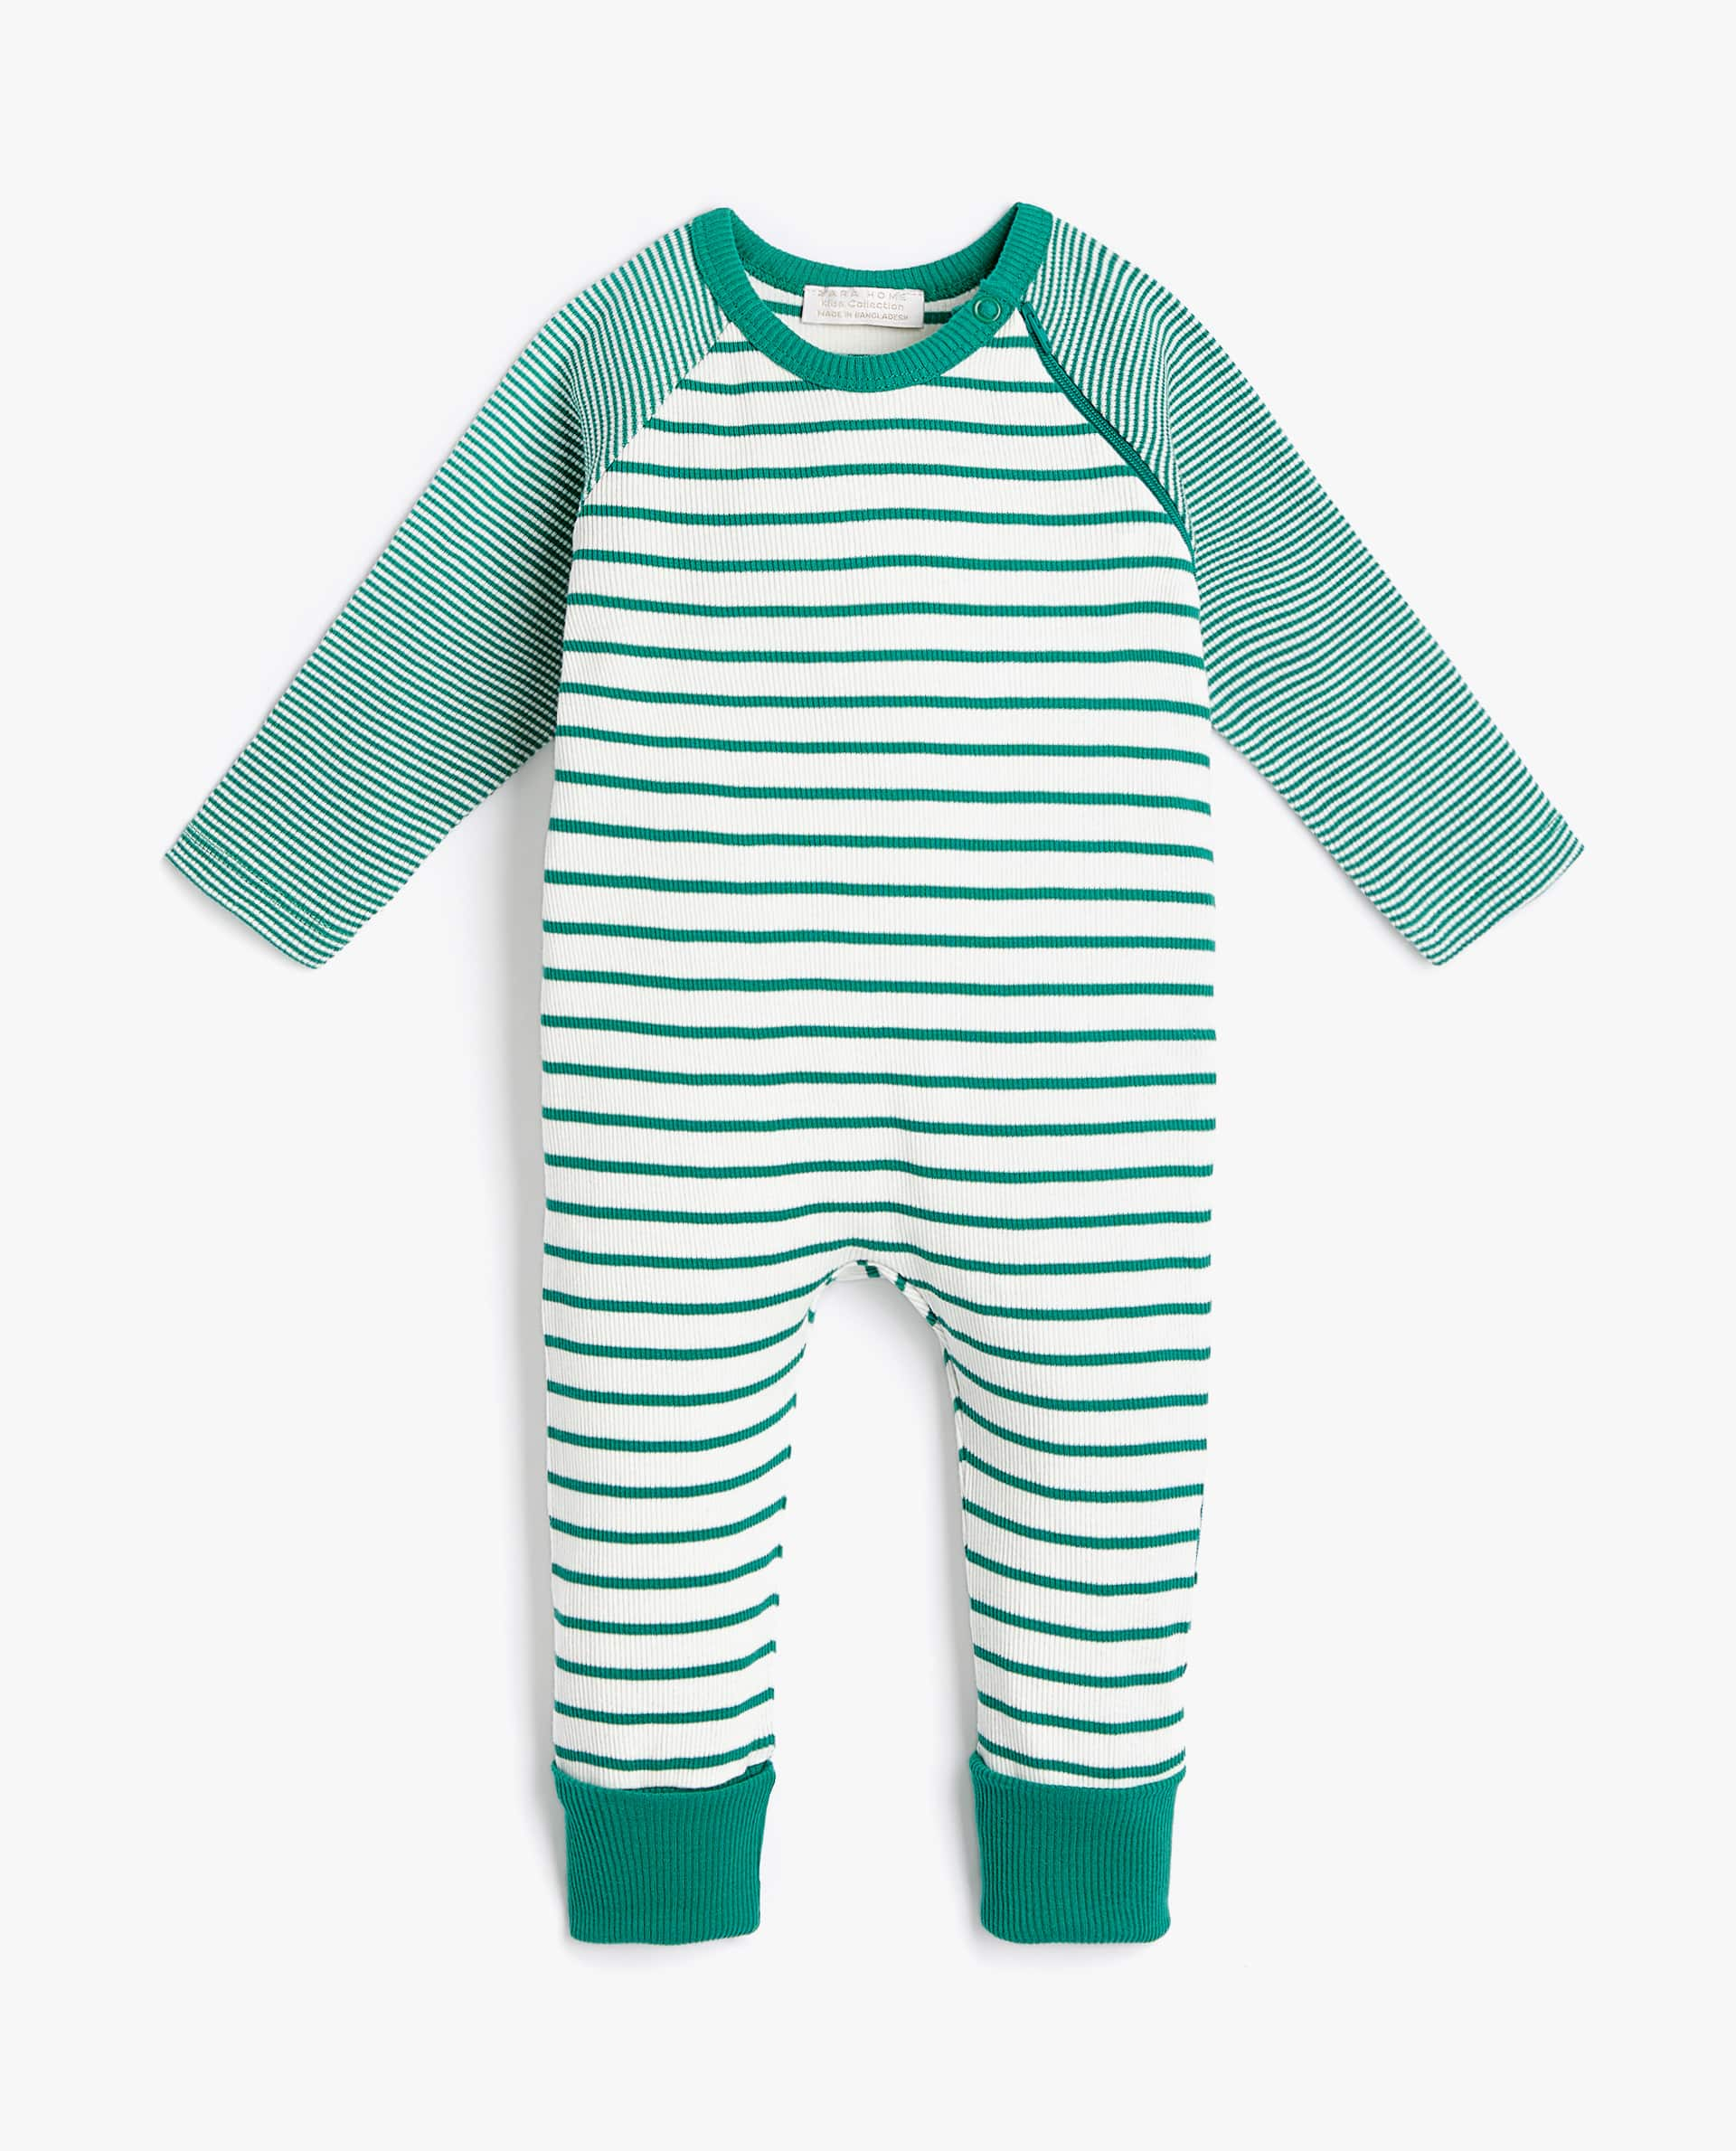 ab00c580806 STRIPED ROMPER SUIT - BABY 3 MONTHS - 12 MONTHS - CLOTHING ...